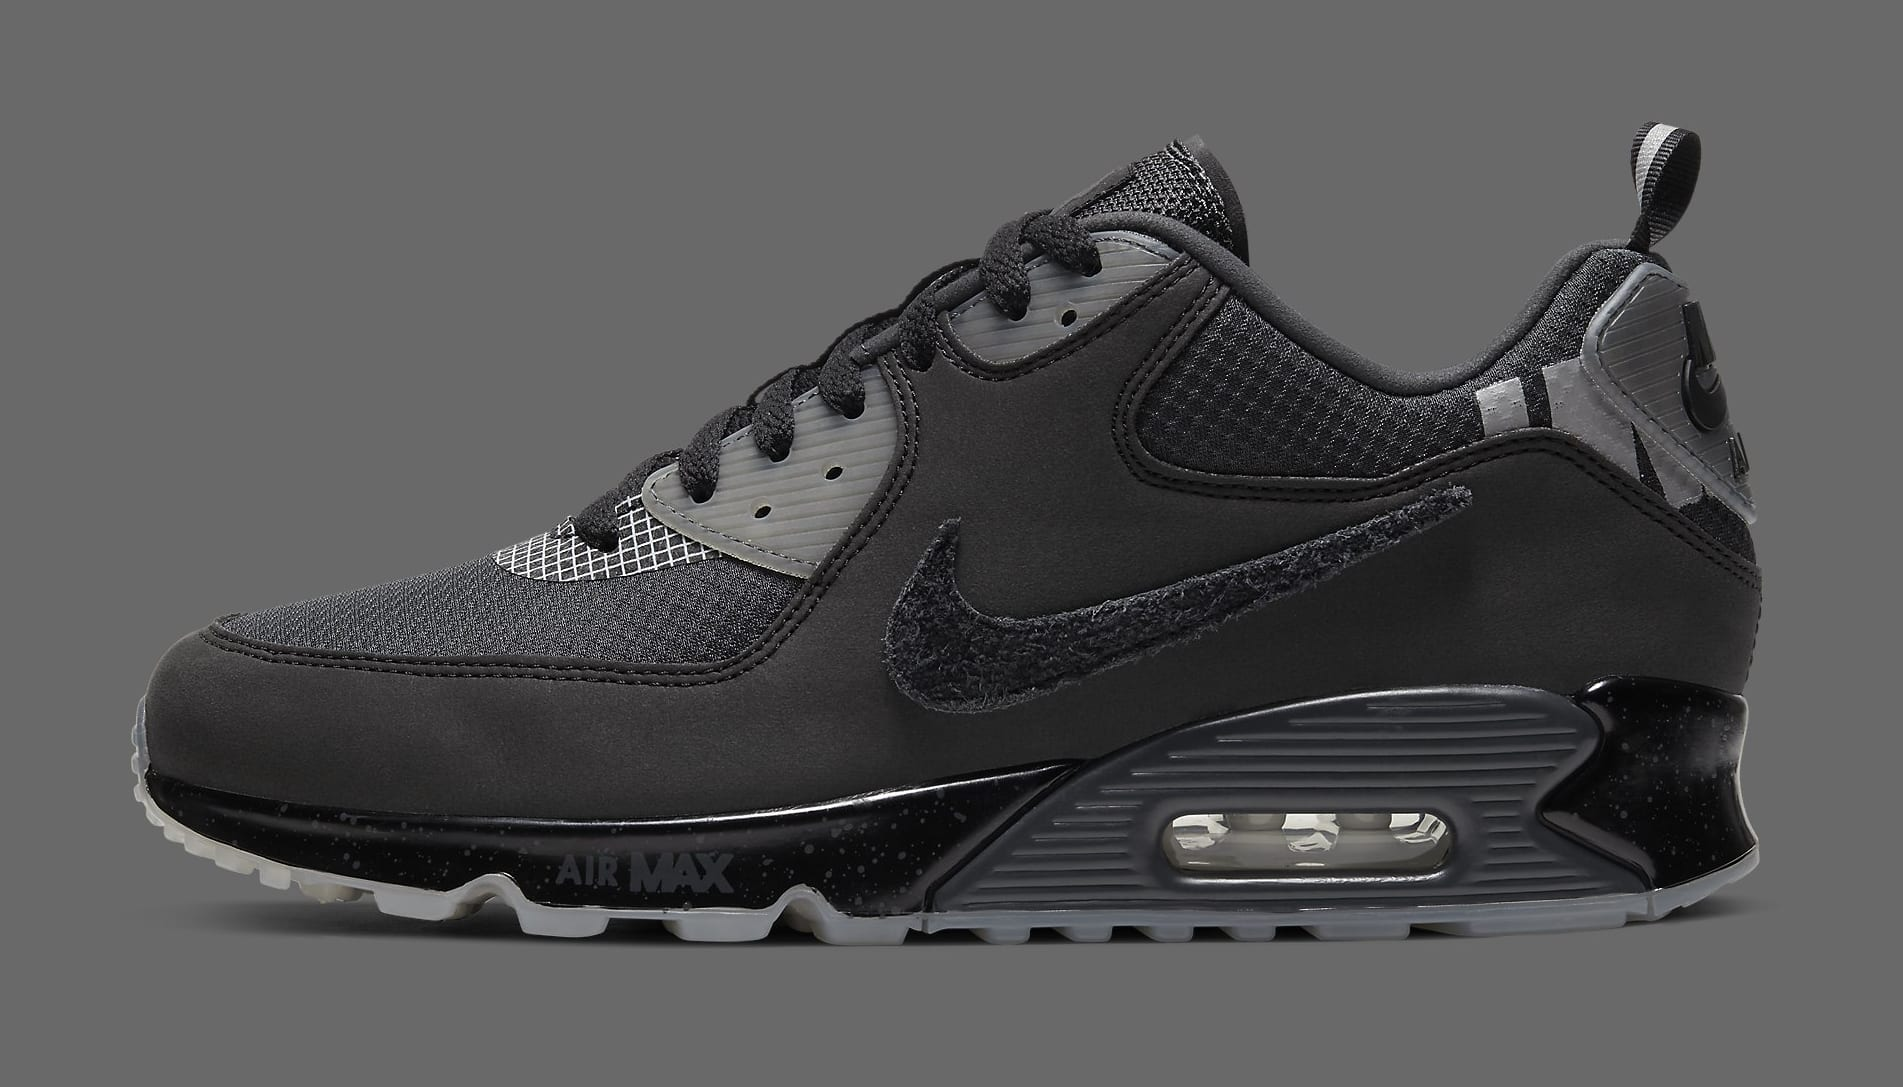 undefeated-nike-air-max-90-black-cq2289-002-lateral